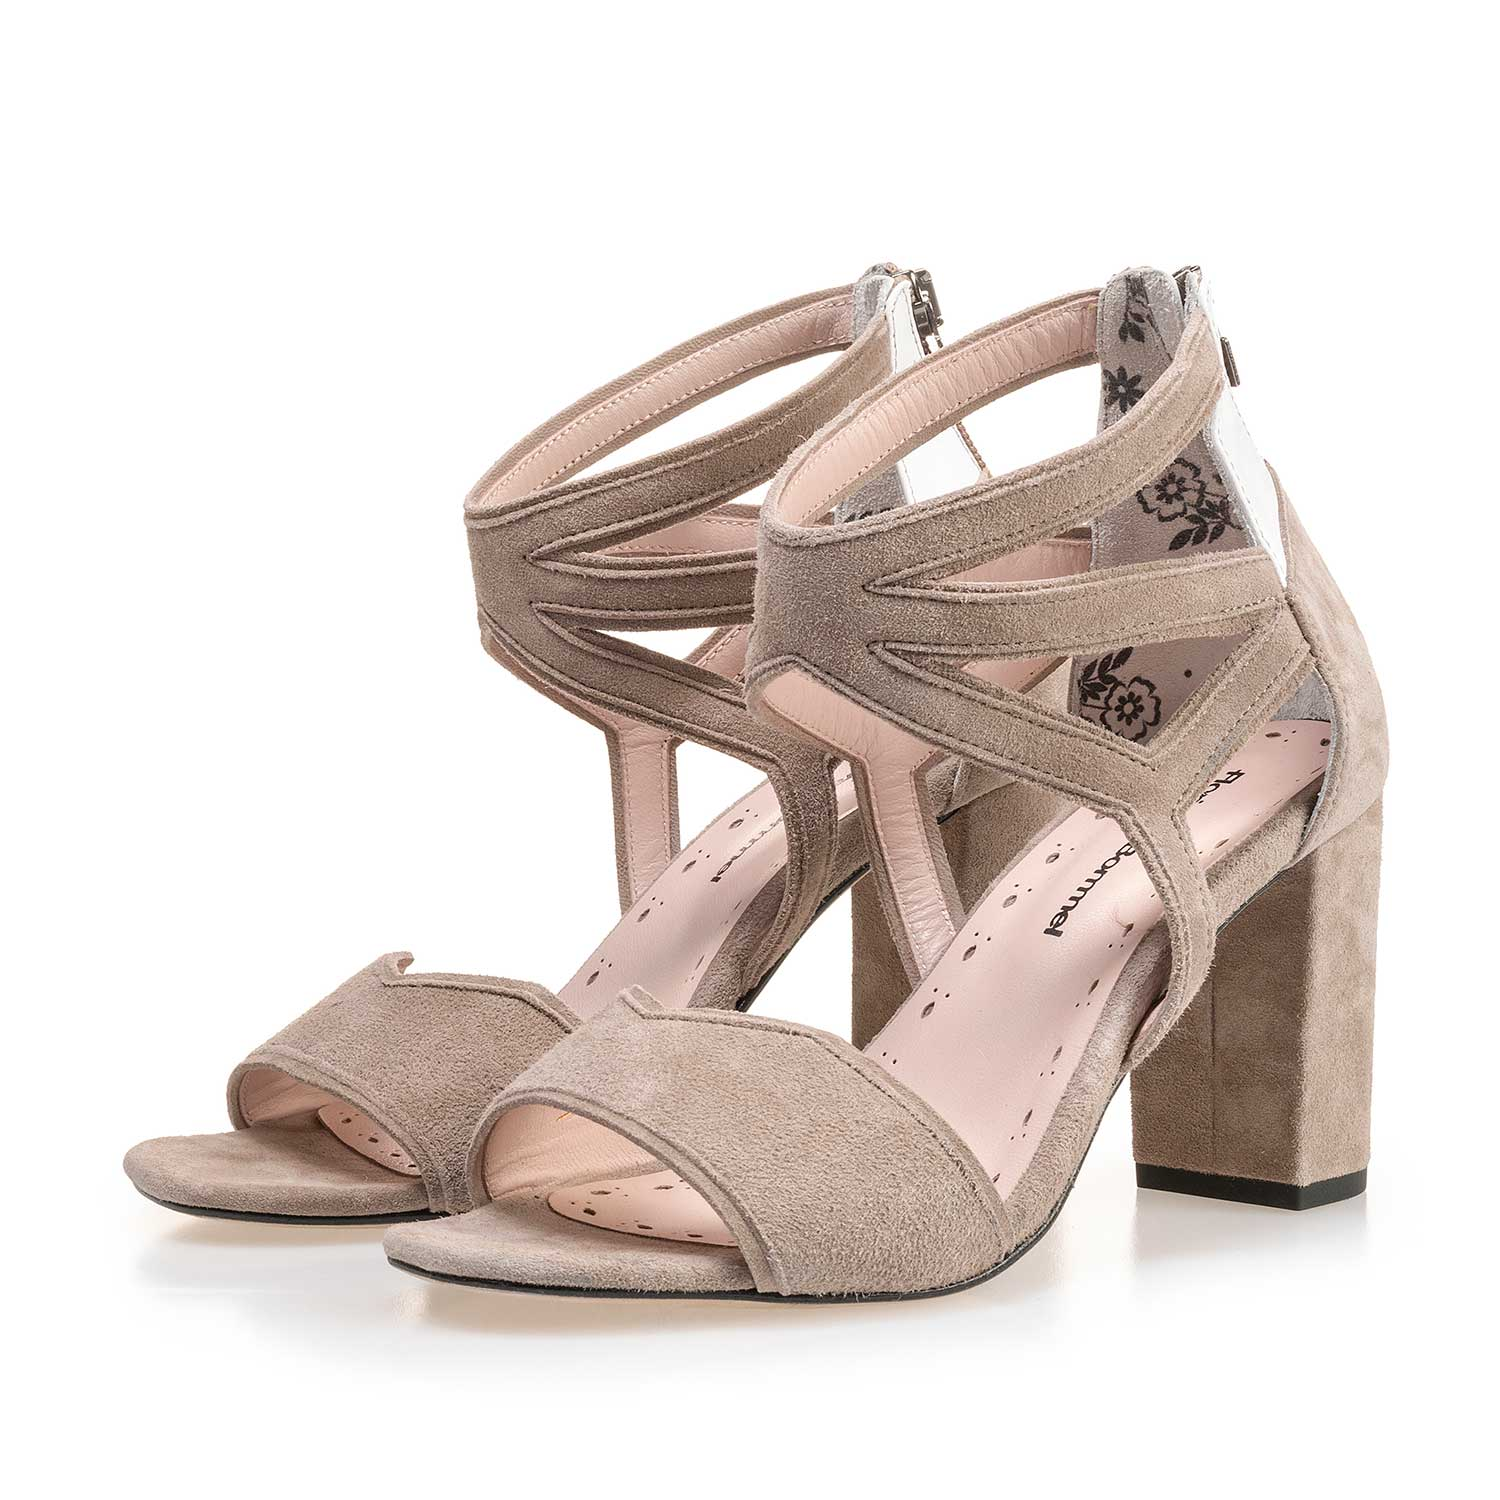 85221/01 - Taupe-coloured calf's suede leather heeled sandal